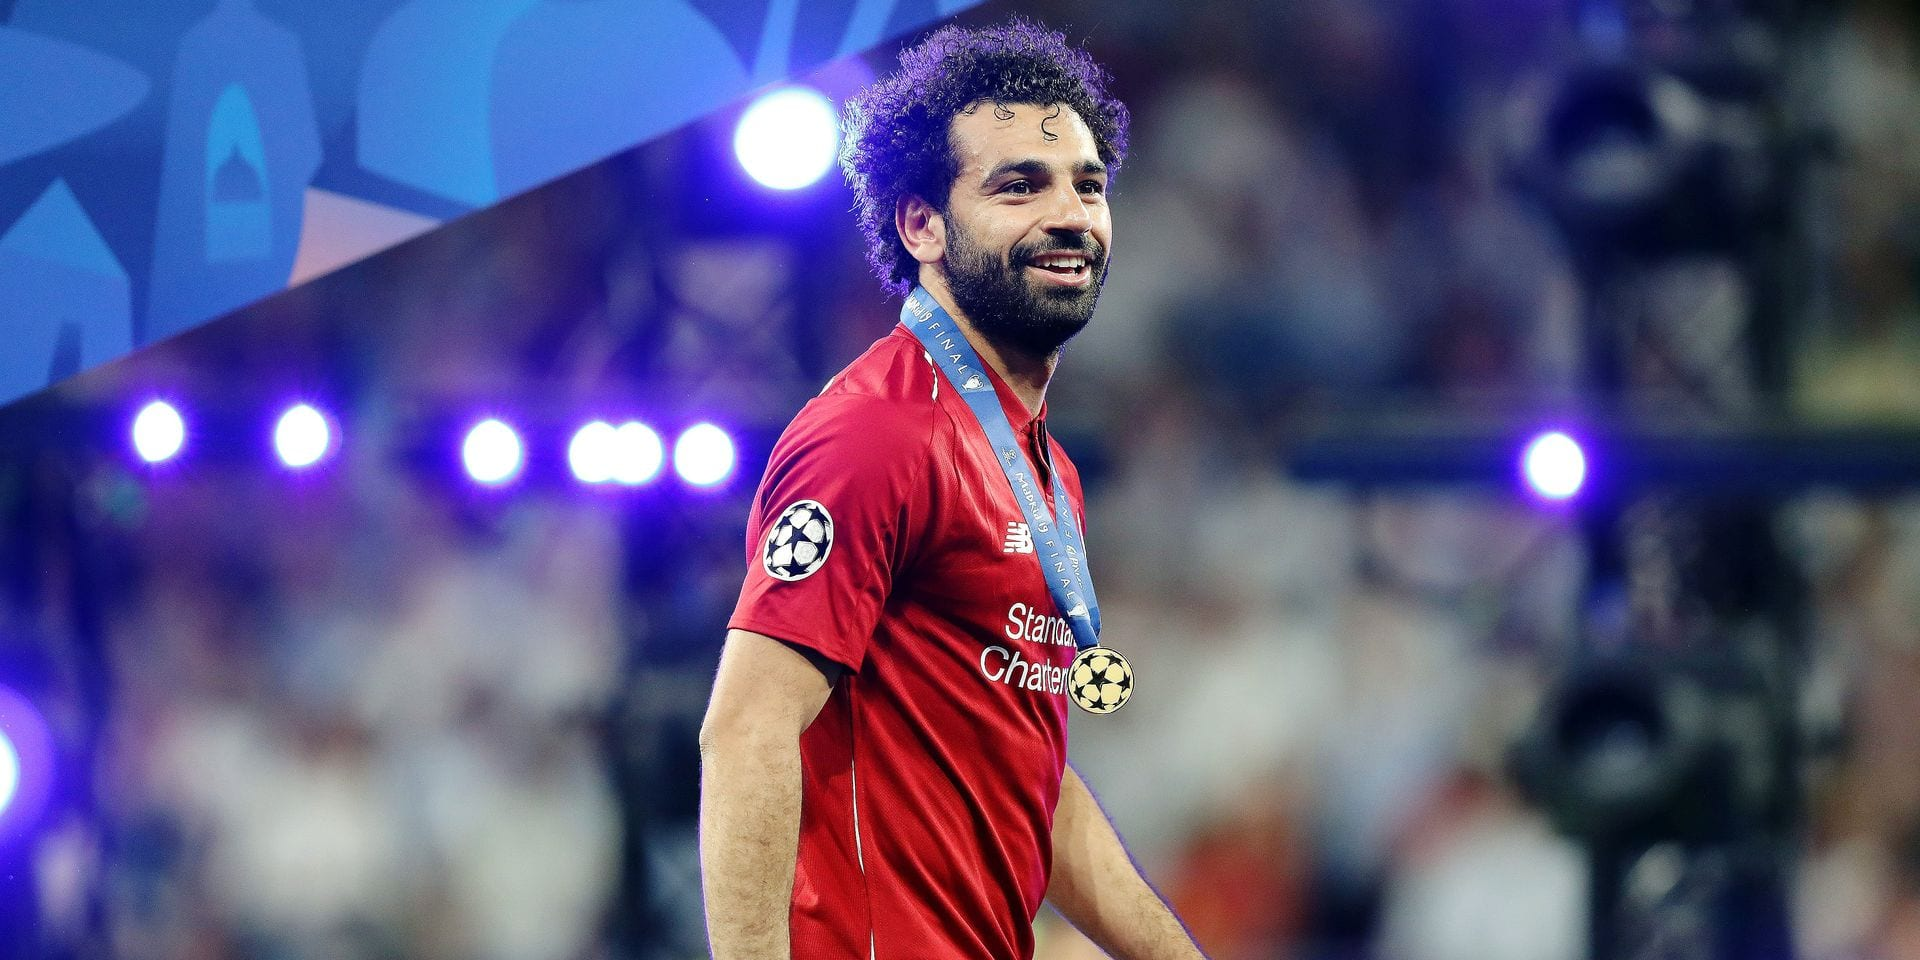 firo: 01.06.2019 Football, Football: Uefa Champions League, CL, CHL Season 2018/2019 Final, Final, Endgame Tottenham Hotspur - Liverpool FC 0: 2 LIV Mohamed Salah, Award Ceremony, jubilation, Handing Over of the Cup, Champions League Winner 2019 FC Liverpool, podium, half figure, half body, | usage worldwide Reporters / DPA